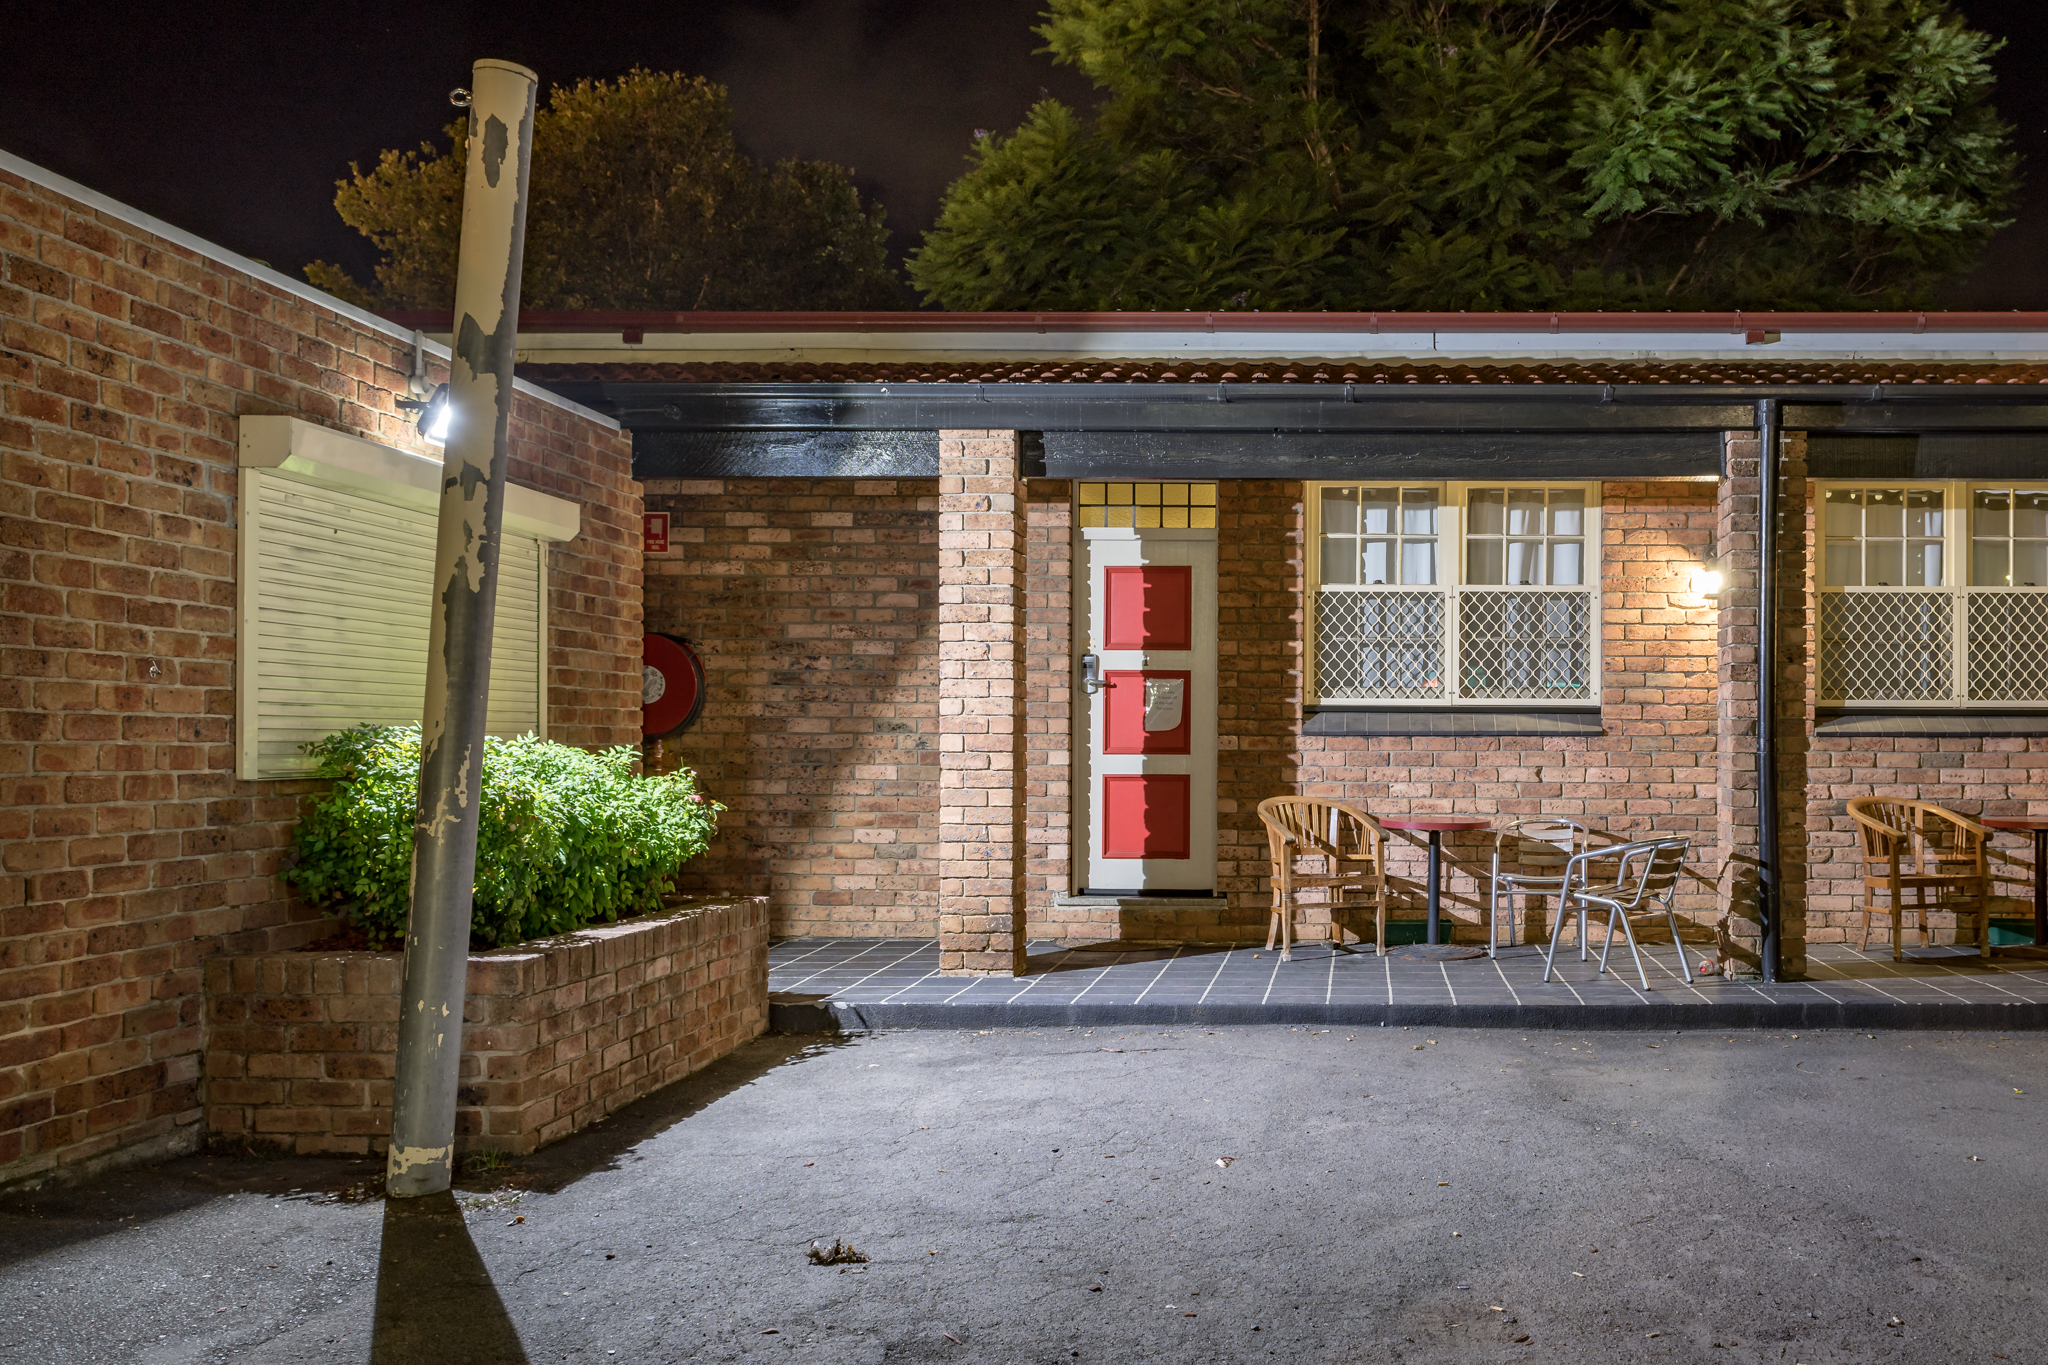 Richmond Inn, Richmond | Less than an hour from Katoomba, Blue Mountains and Sydney. Seconds away from public transport and restaurants. Features include Bar, Bottle Shop, Bistro, TAB, Beer Garden. Live Entertainment; Thursday Karaoke, Friday Live Bands, Saturday DJ. Bistro Boasts $10 Lunch Specials Monday - Friday. The motel offers clean, quiet and comfortable accommodation with convenient off-street parking. Fully equipped with Wi-Fi, Air-Con, T.V and tea coffee making facilities. Price unavailable.